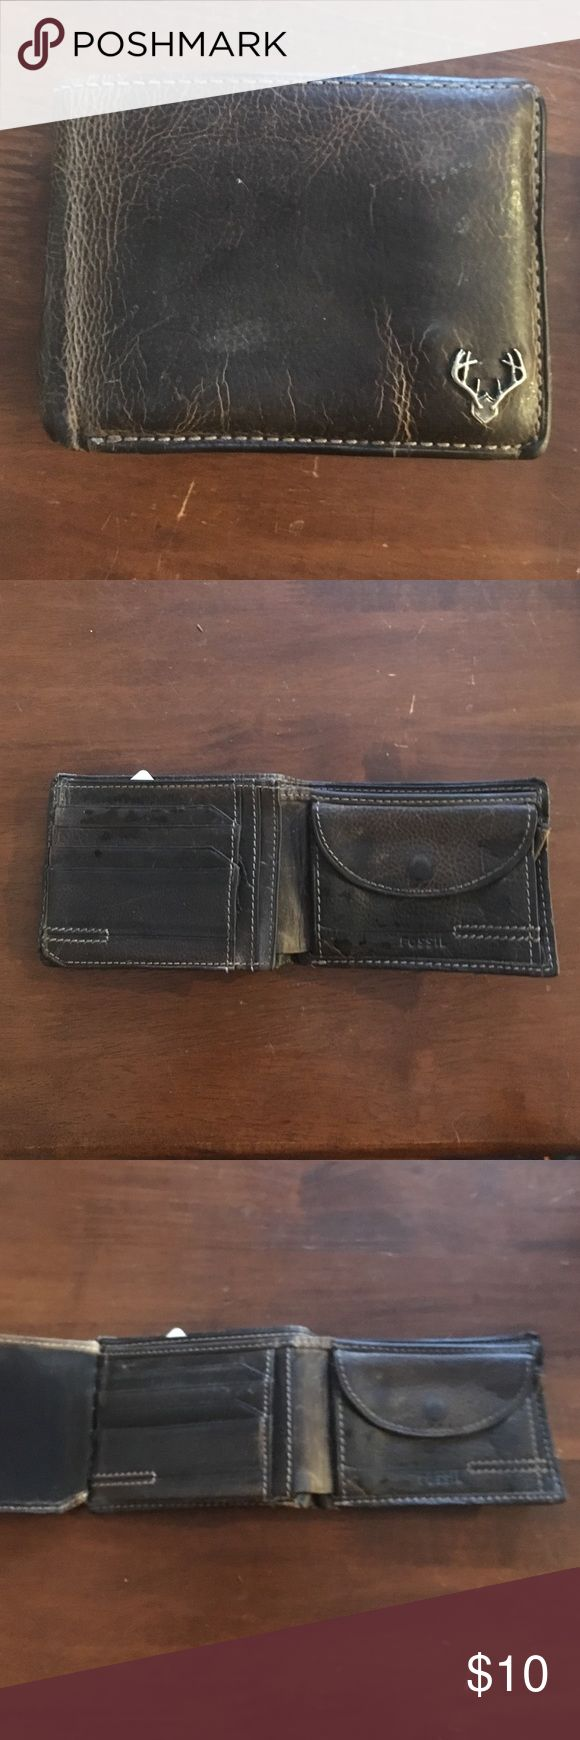 Fossil Wallet Used with much love! Men's wallet, hubs used for several years, has a really cool elk mount in the corner! Fossil Other